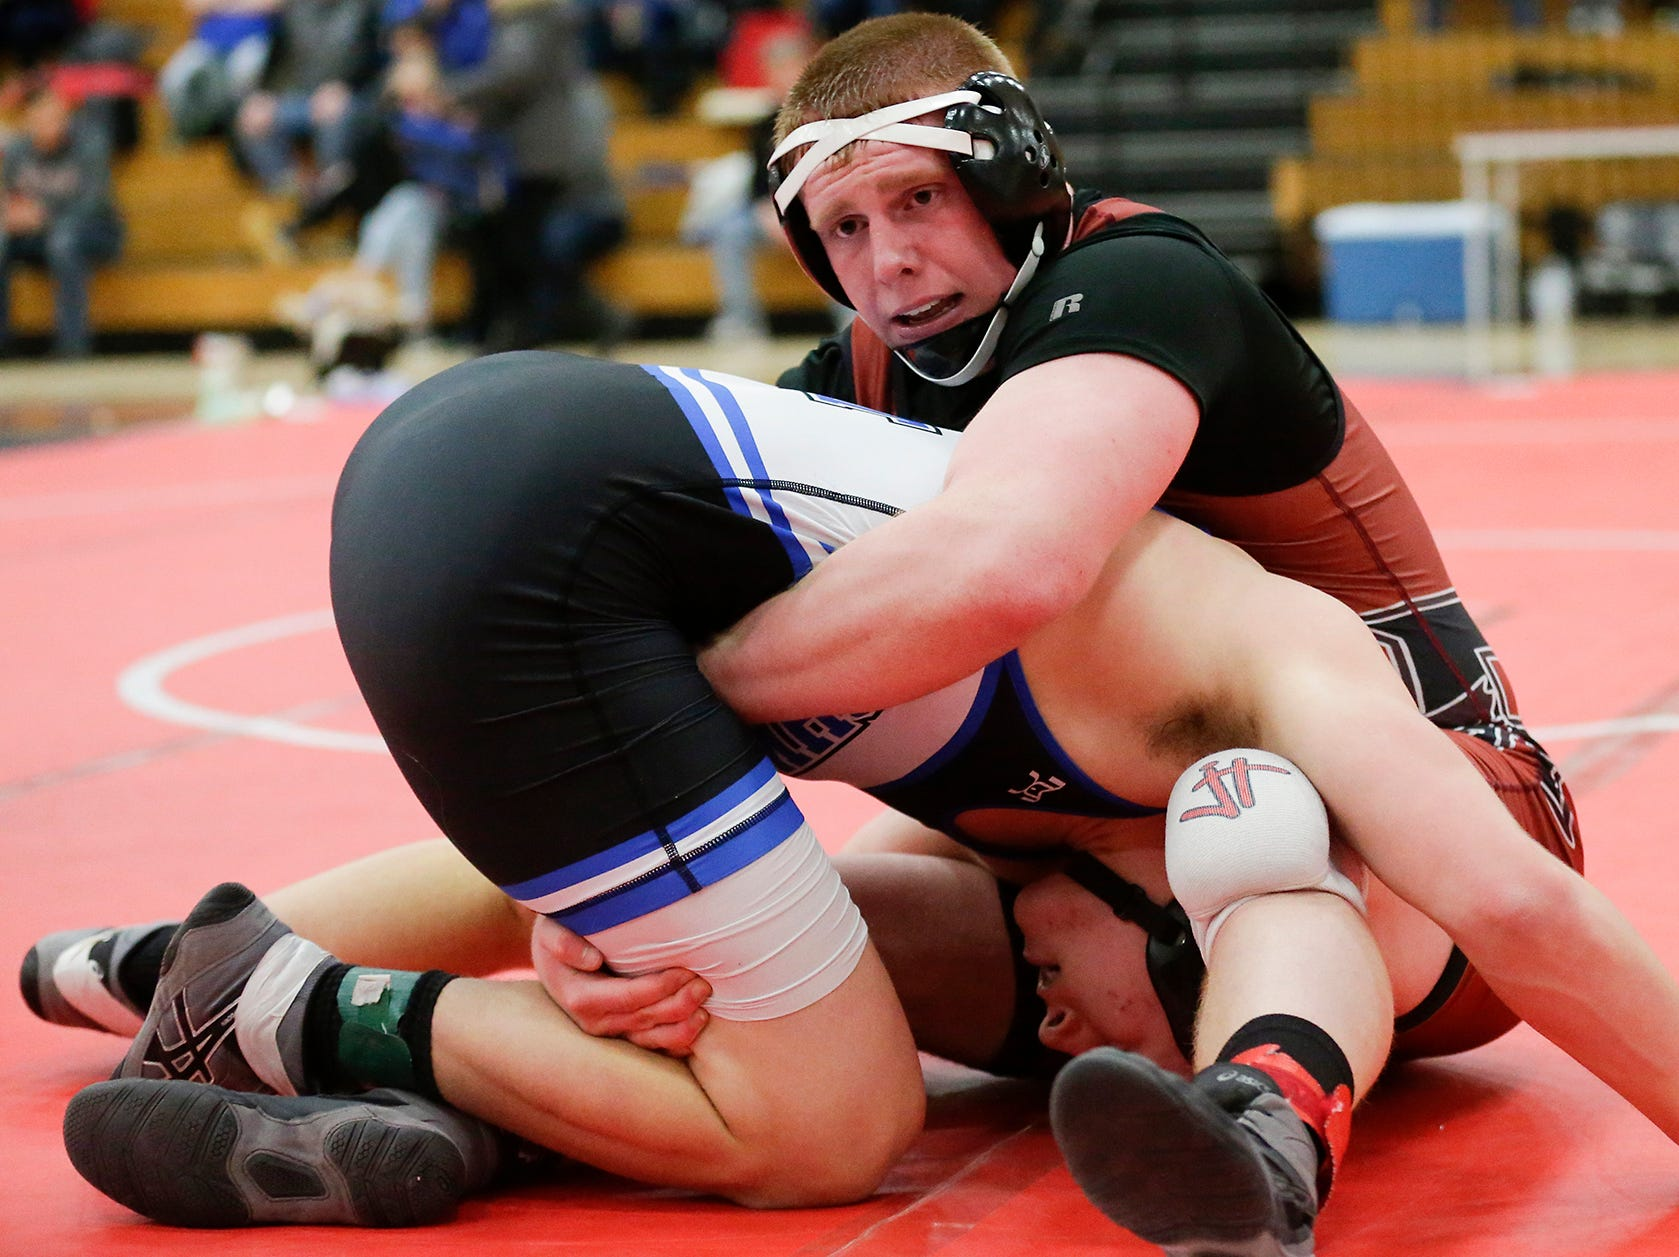 Oshkosh West High School's Blake Framke wrestles Fond du Lac High School's Austin Baatz in a 195-pound match during the Fox Valley Association wrestling championship meet held Saturday, Feb. 2, 2019, in Fond du Lac. Baatz won the meet by a pin.